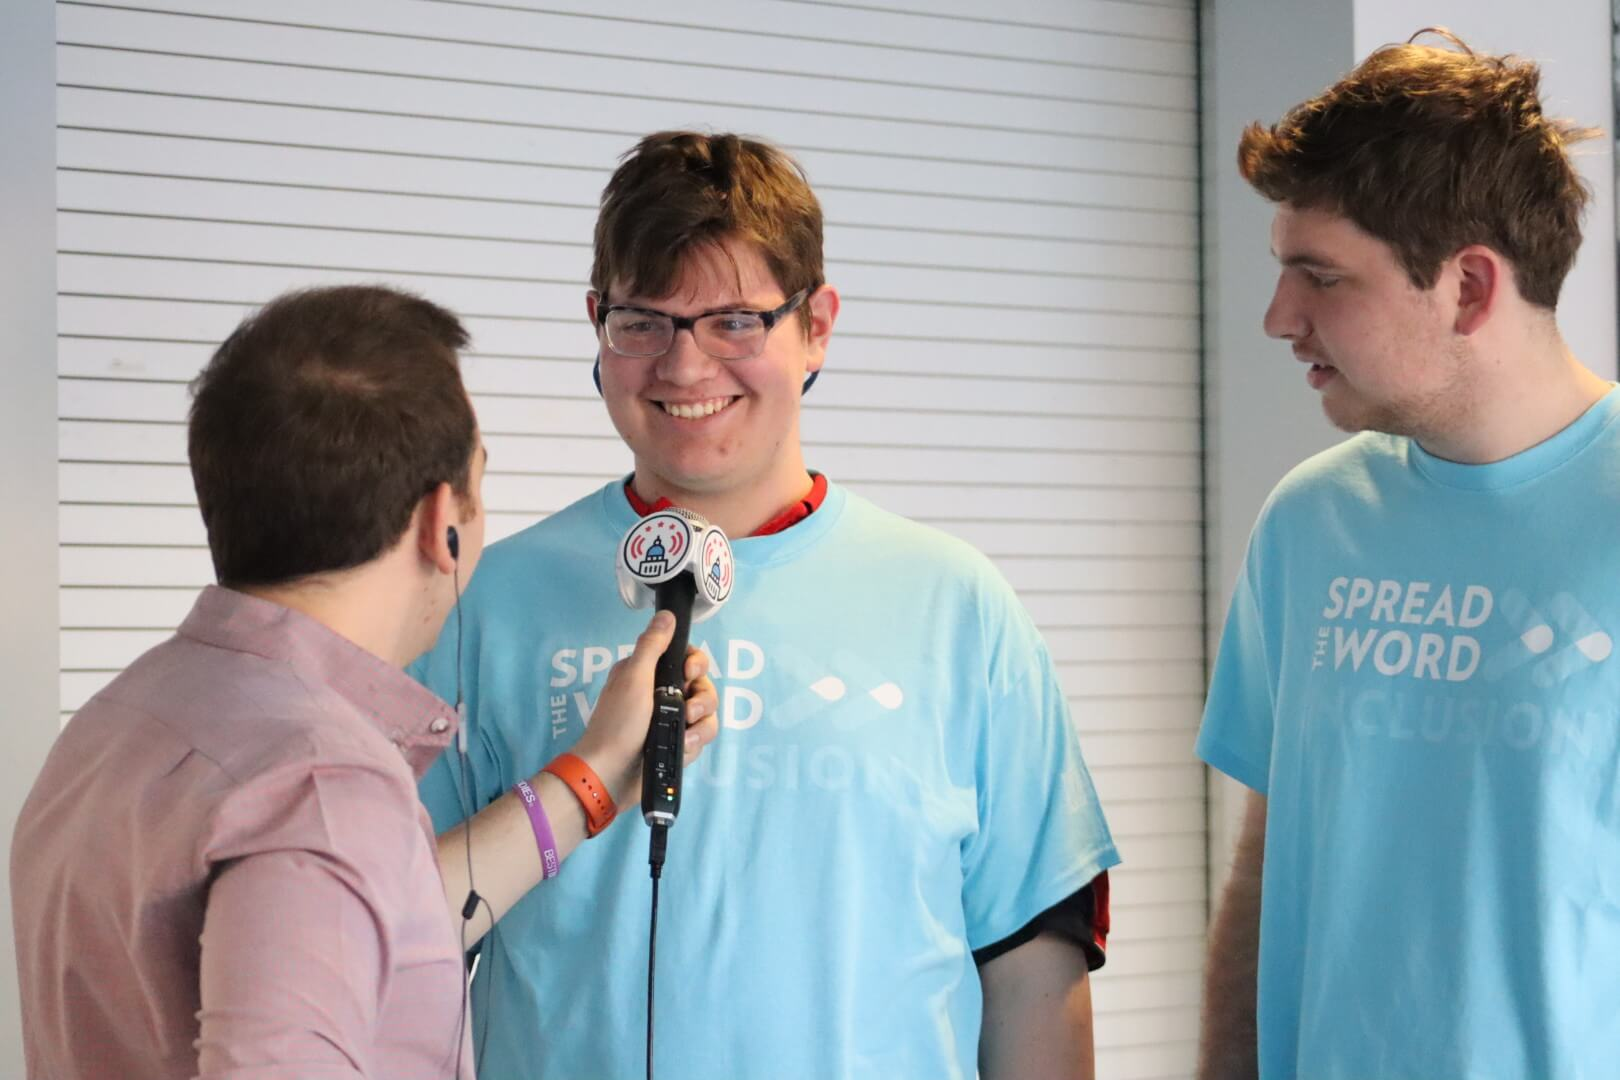 U.S. Youth Ambassadors Alex and Will getting interviewed on Spread the Word Day.